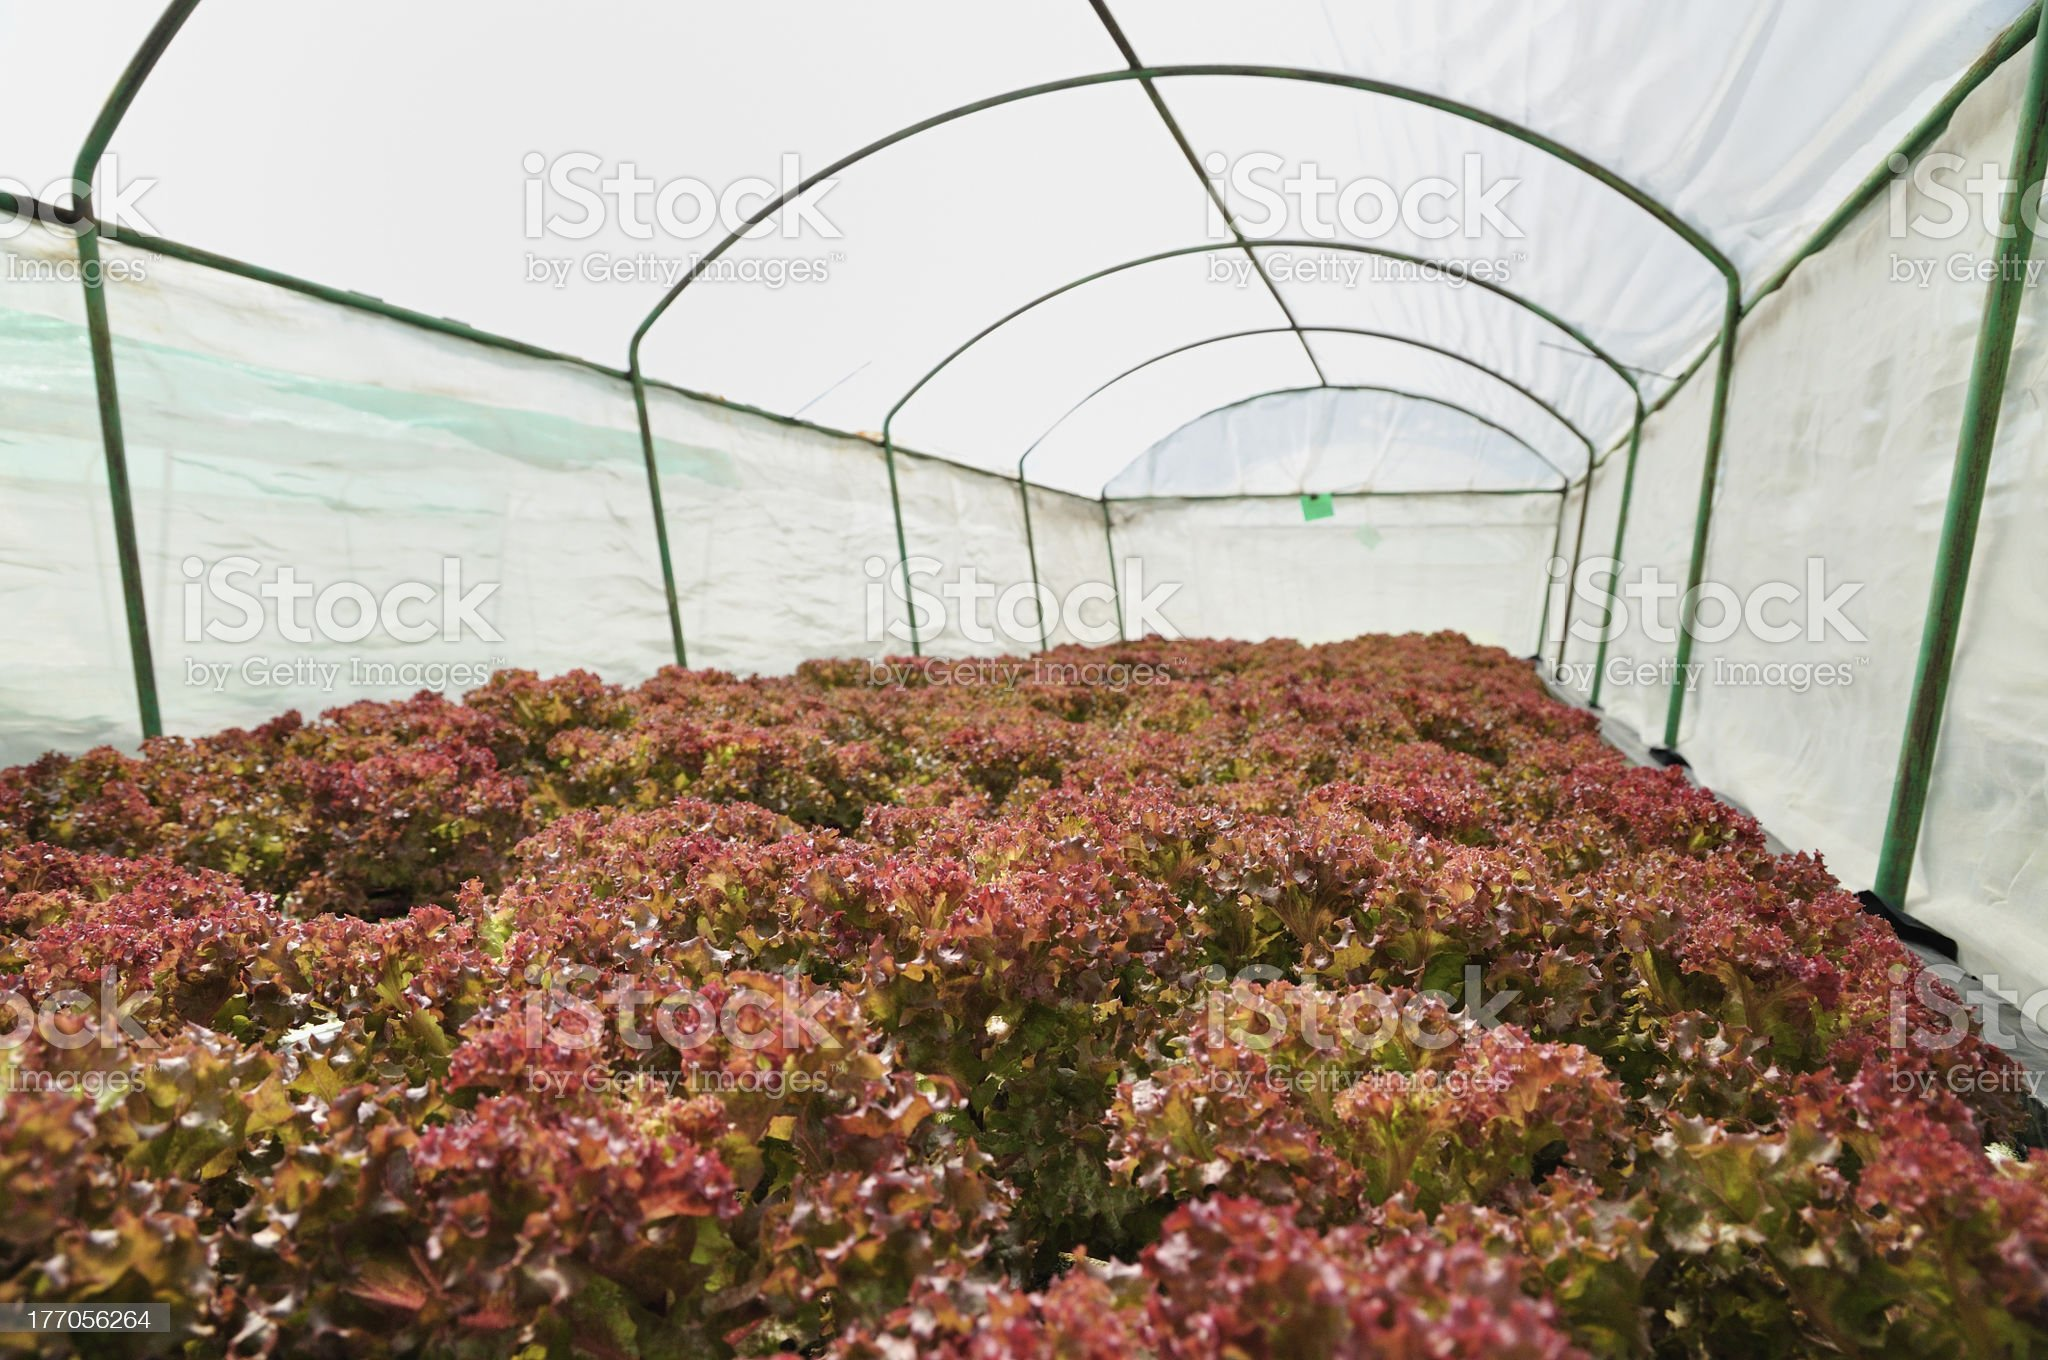 Hydroponic Vegetables (Lettuce) in Covered Netting royalty-free stock photo